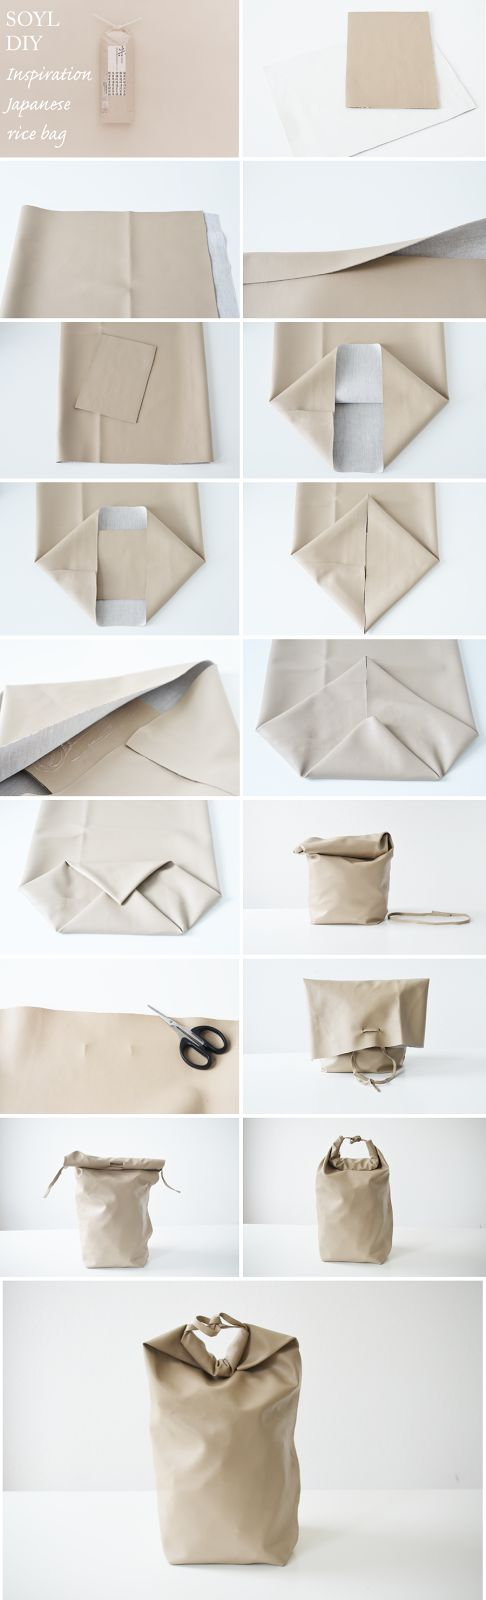 DIY Bag Kenya Hara inspired Japanese rice packaging